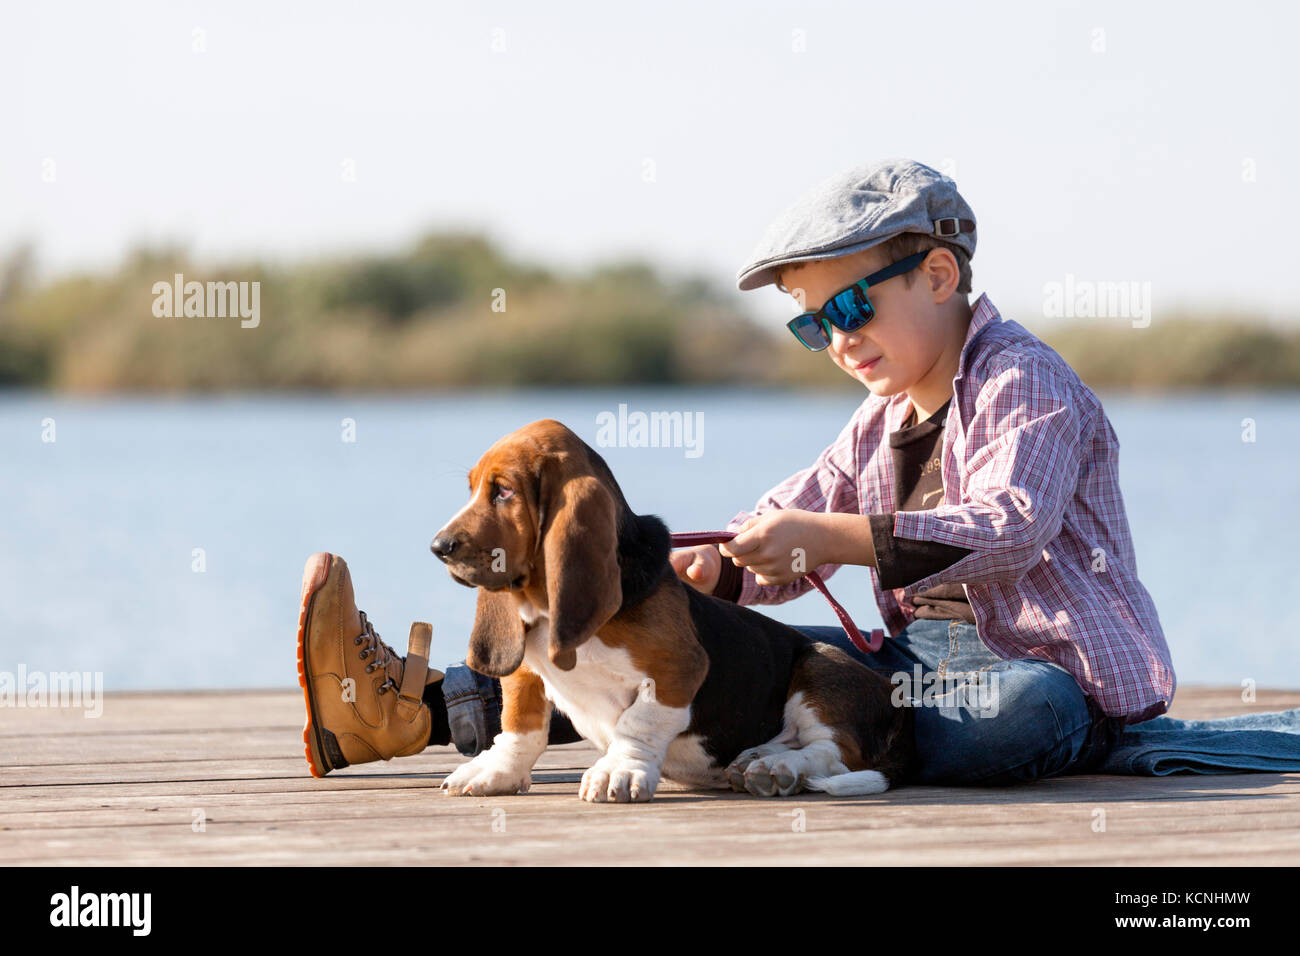 Little sweet boy with a hat and sunglasses sits by the river with his dog. They enjoy together on a beautiful sunny - Stock Image